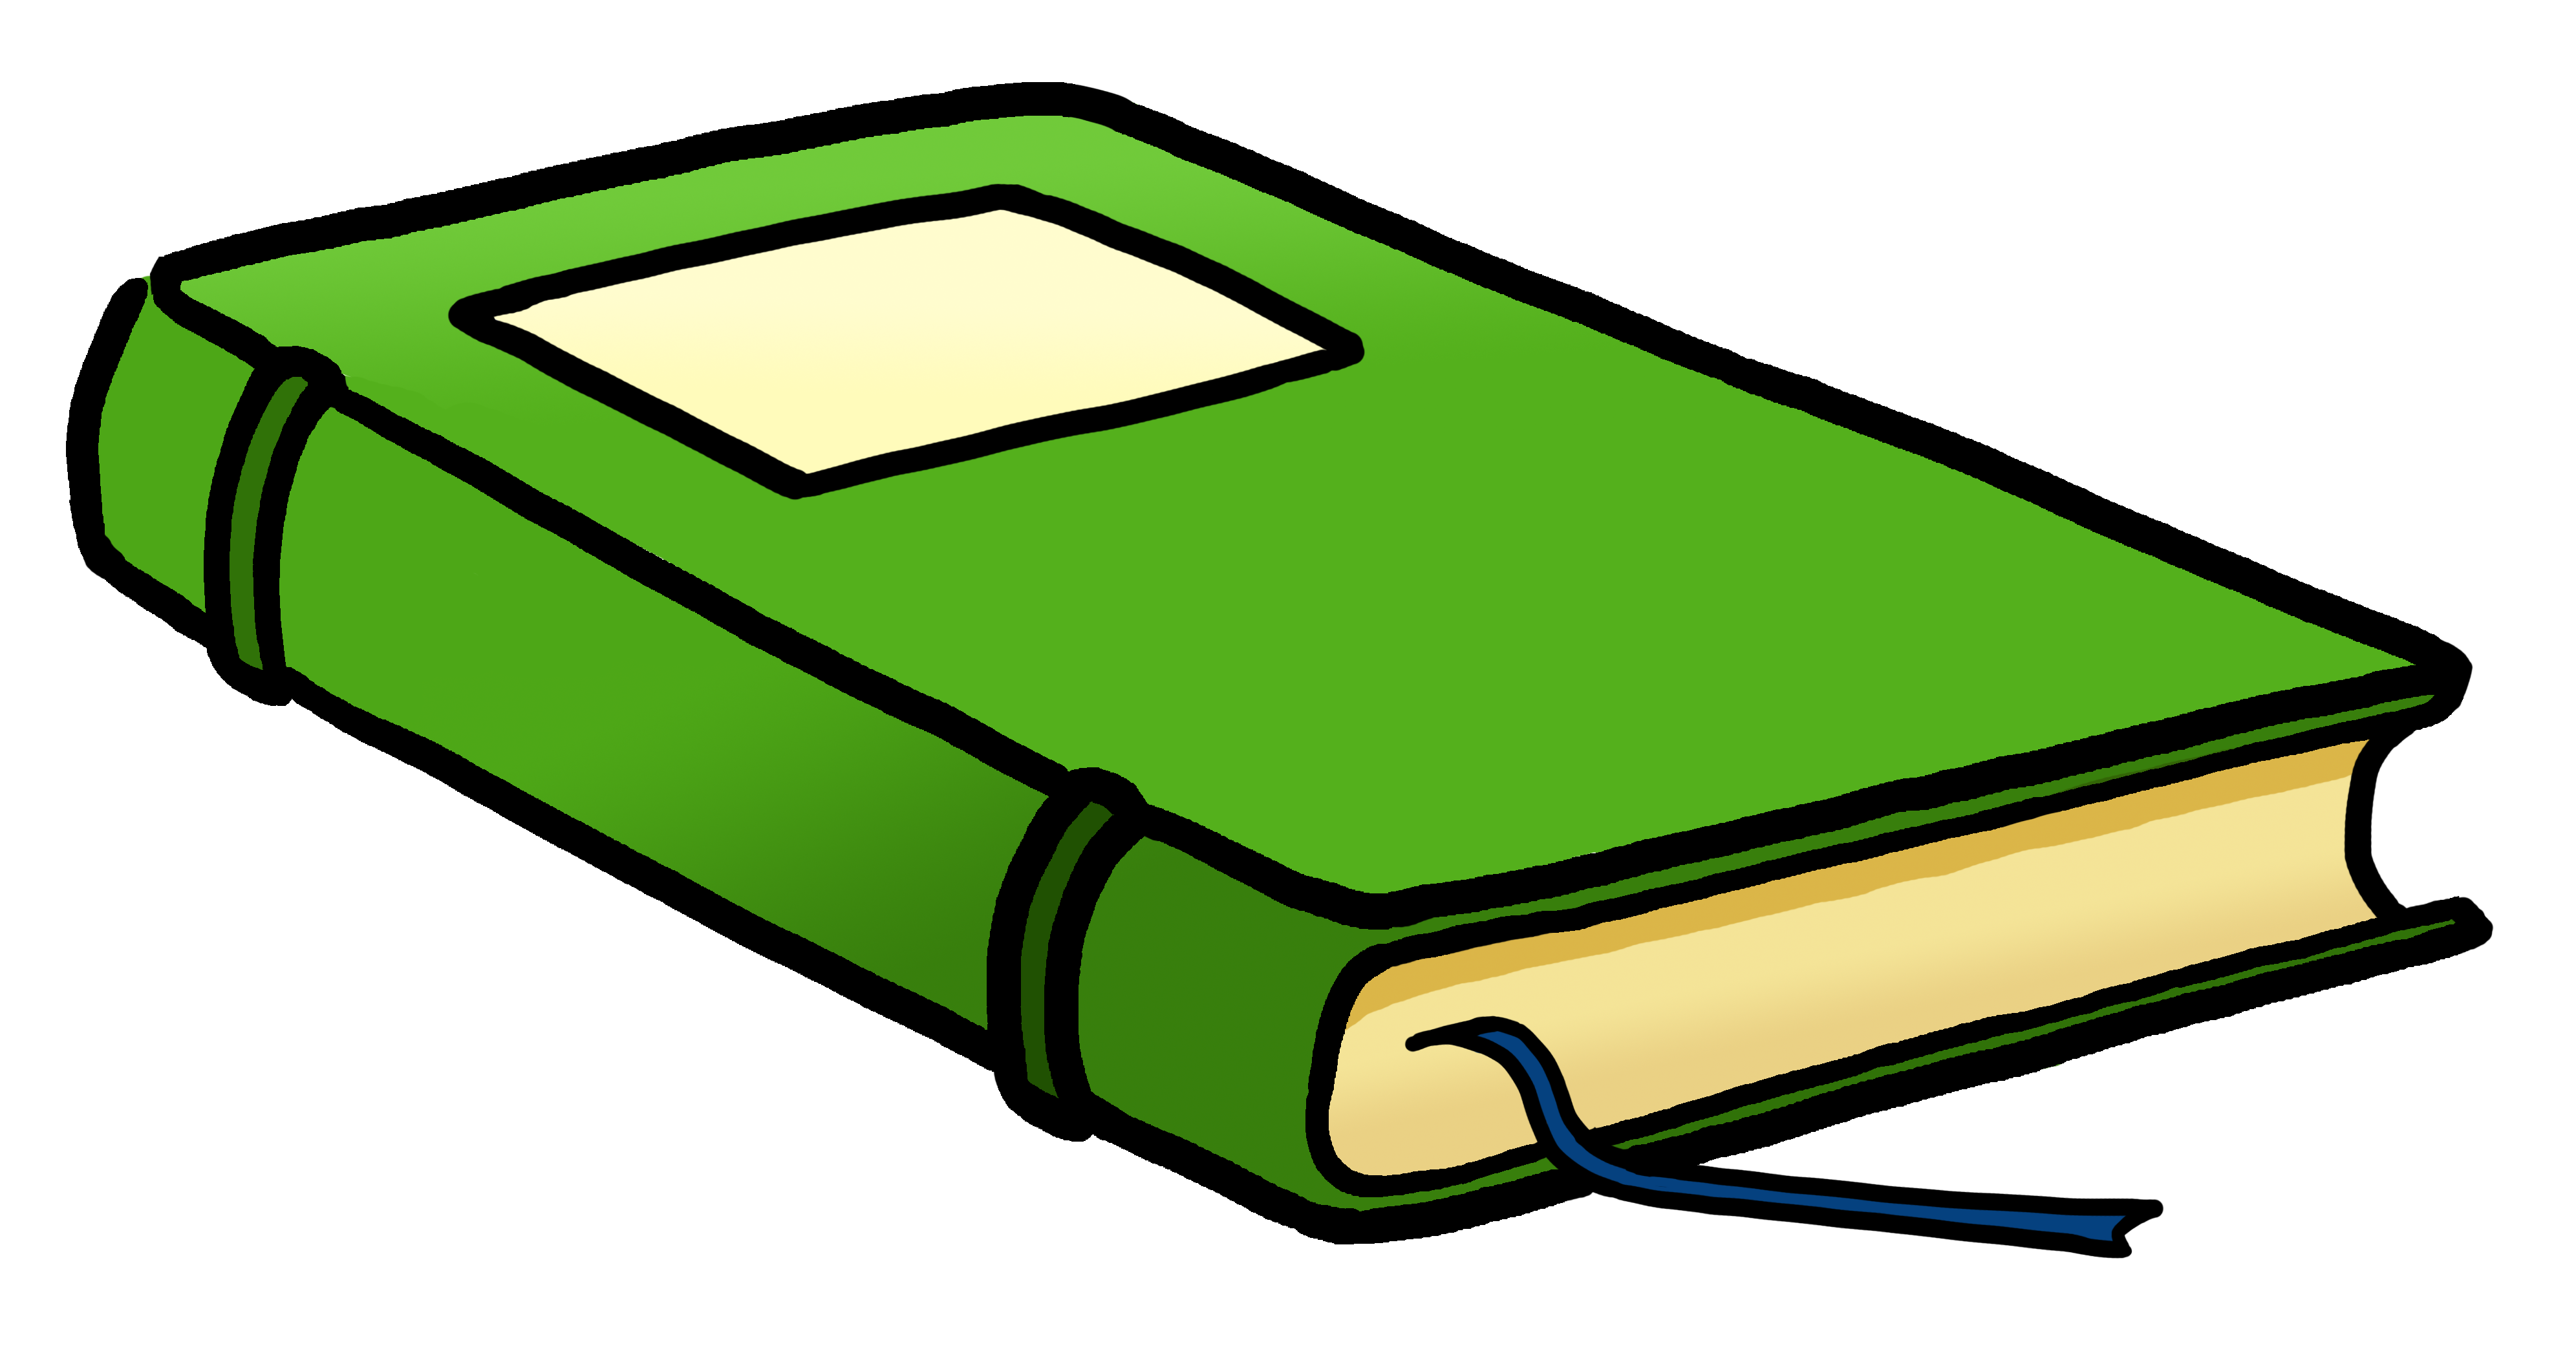 Book Clip Art Pictures - Textbook Clipart